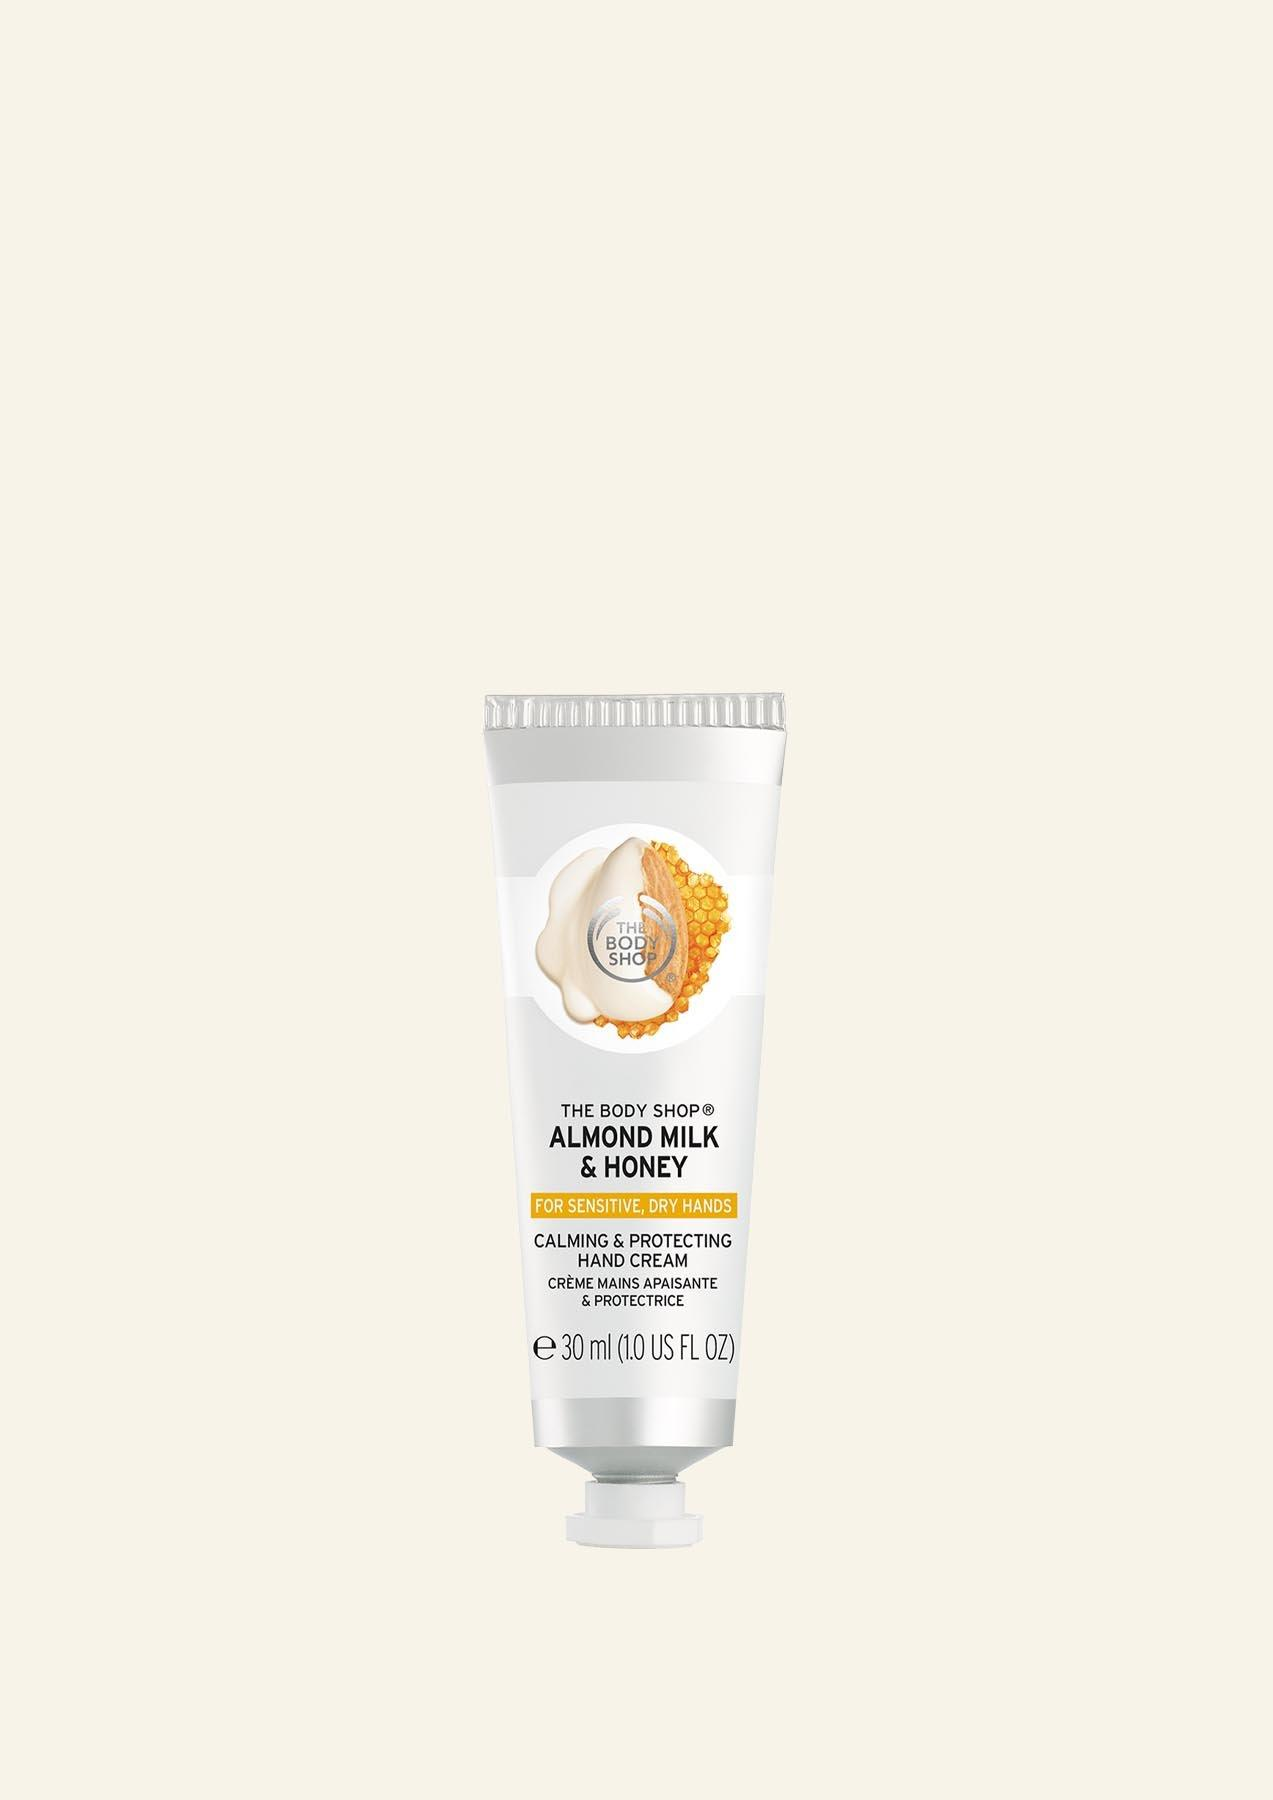 The Body Shop Almond Milk & Honey Calming & Protecting Hand Cream 30ml